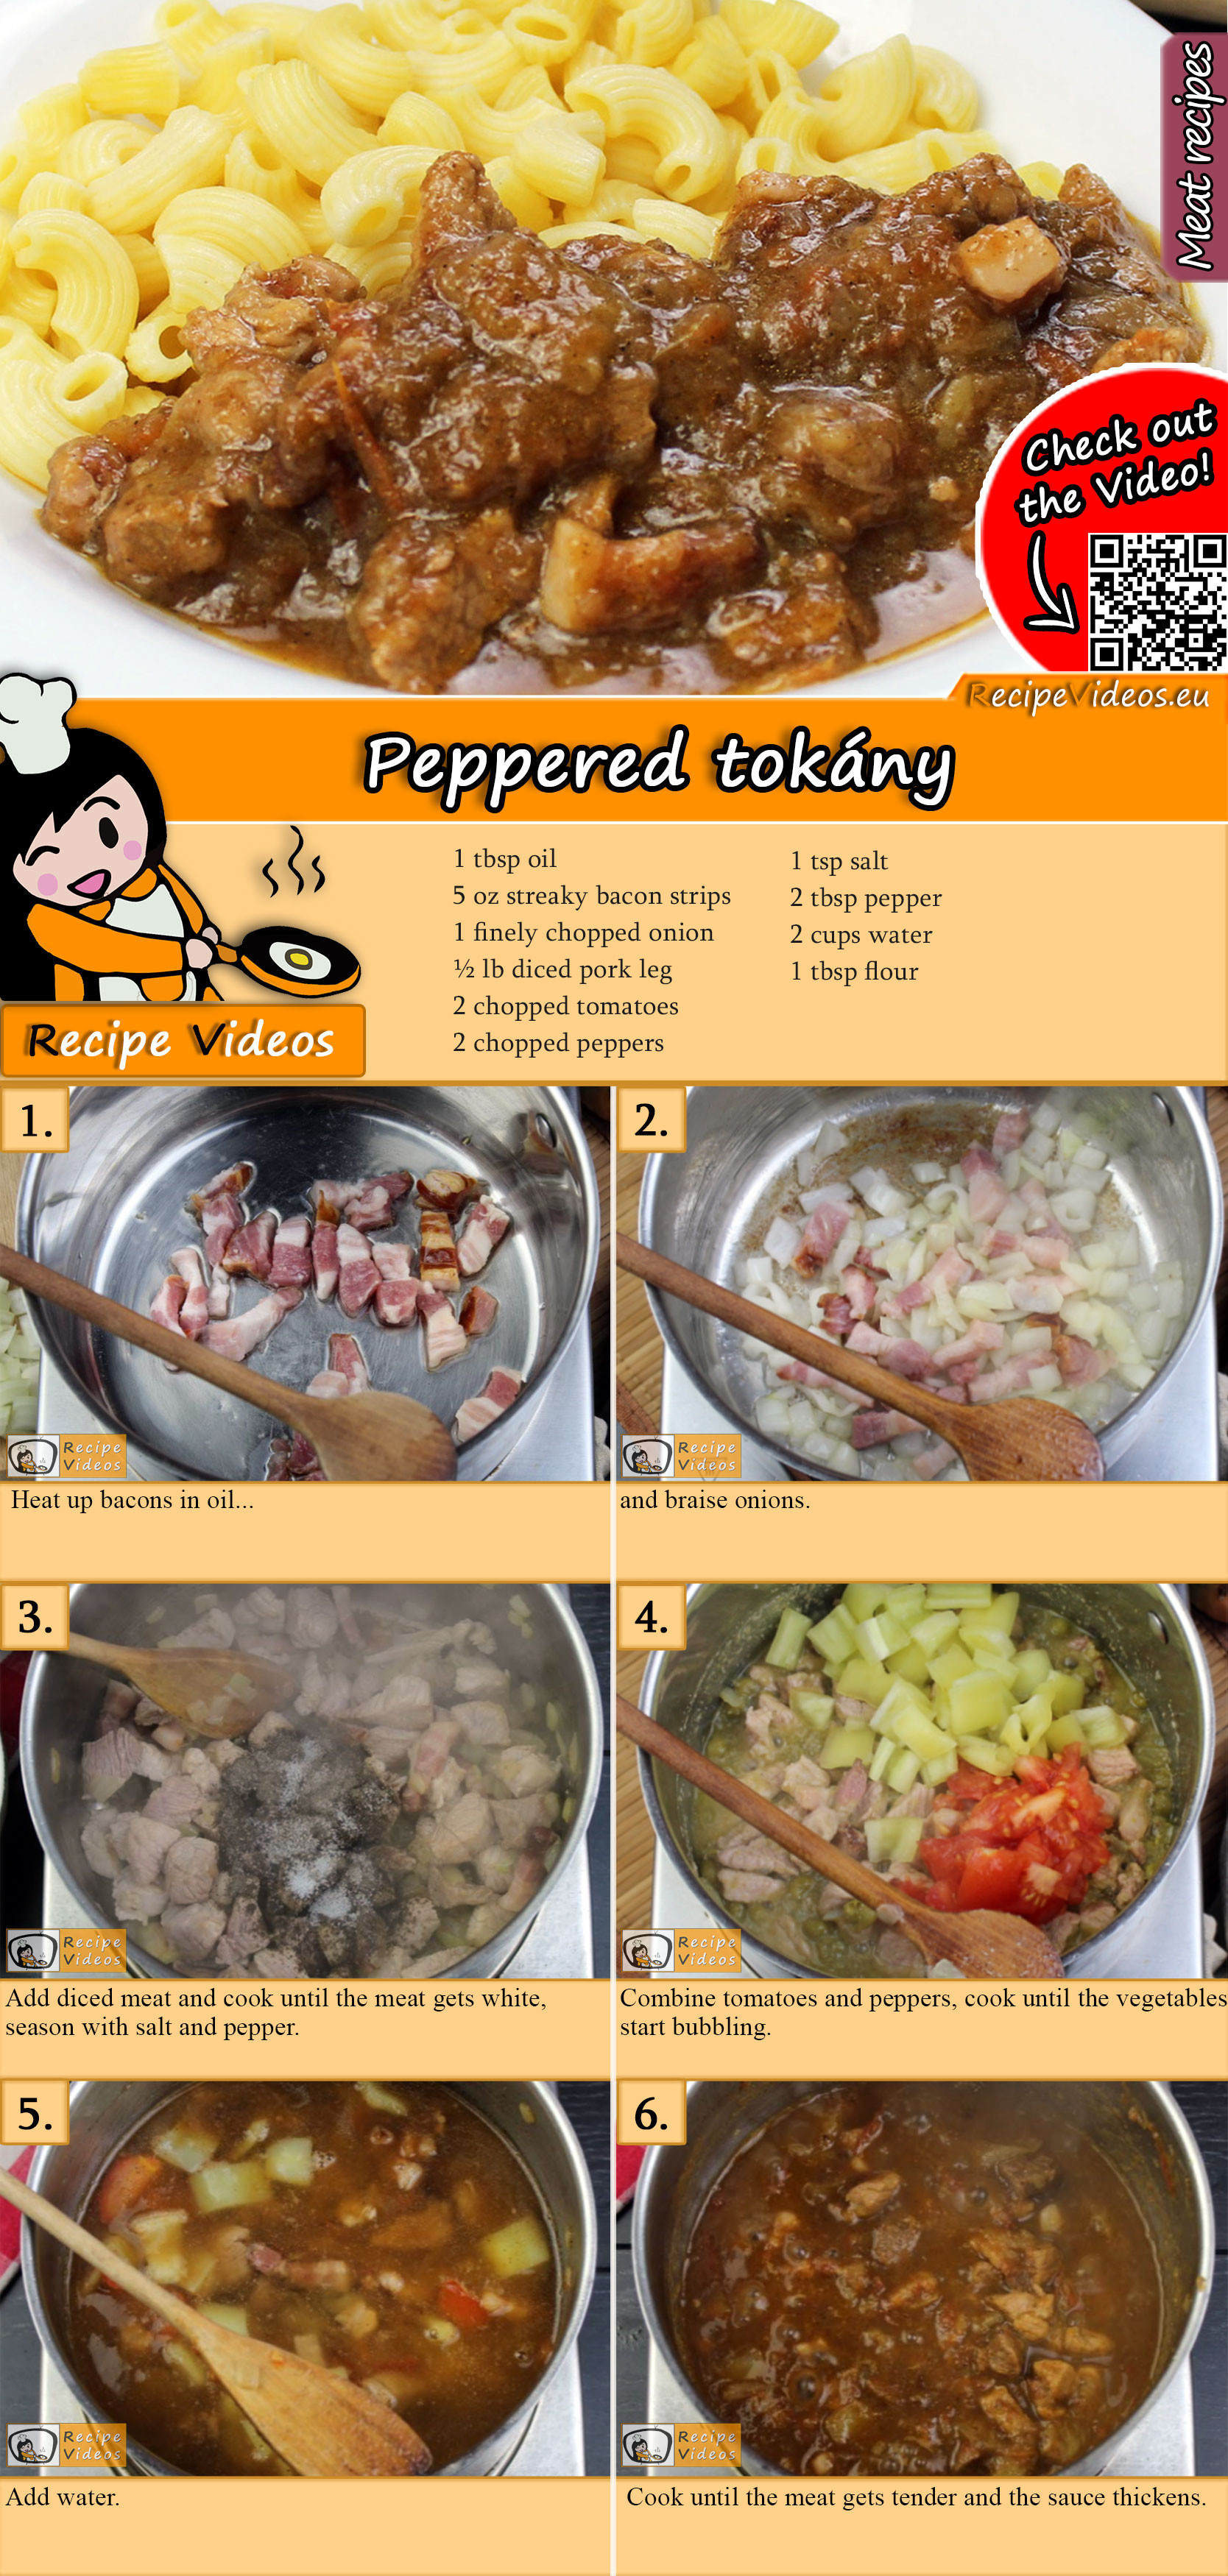 Peppered tokány recipe with video